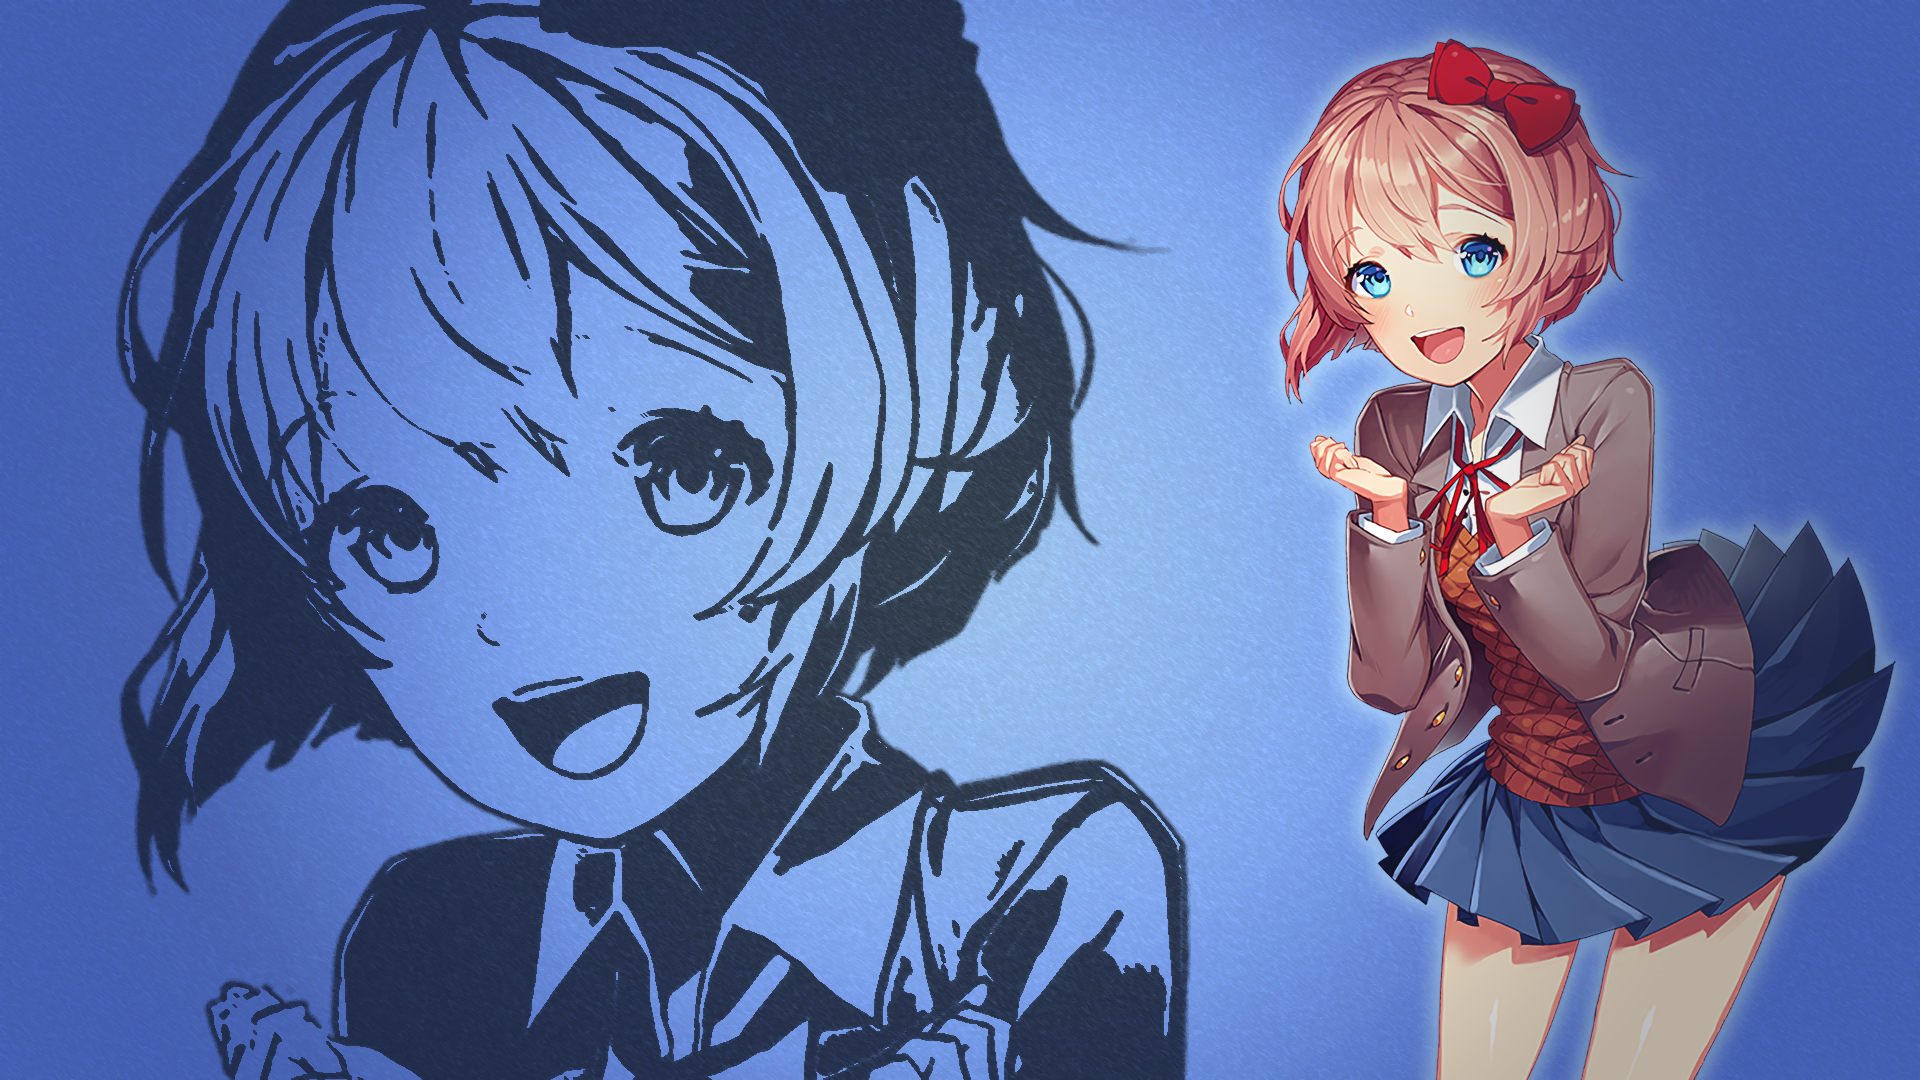 Doki Doki Literature Club Wallpaper Doki Doki Literature Club